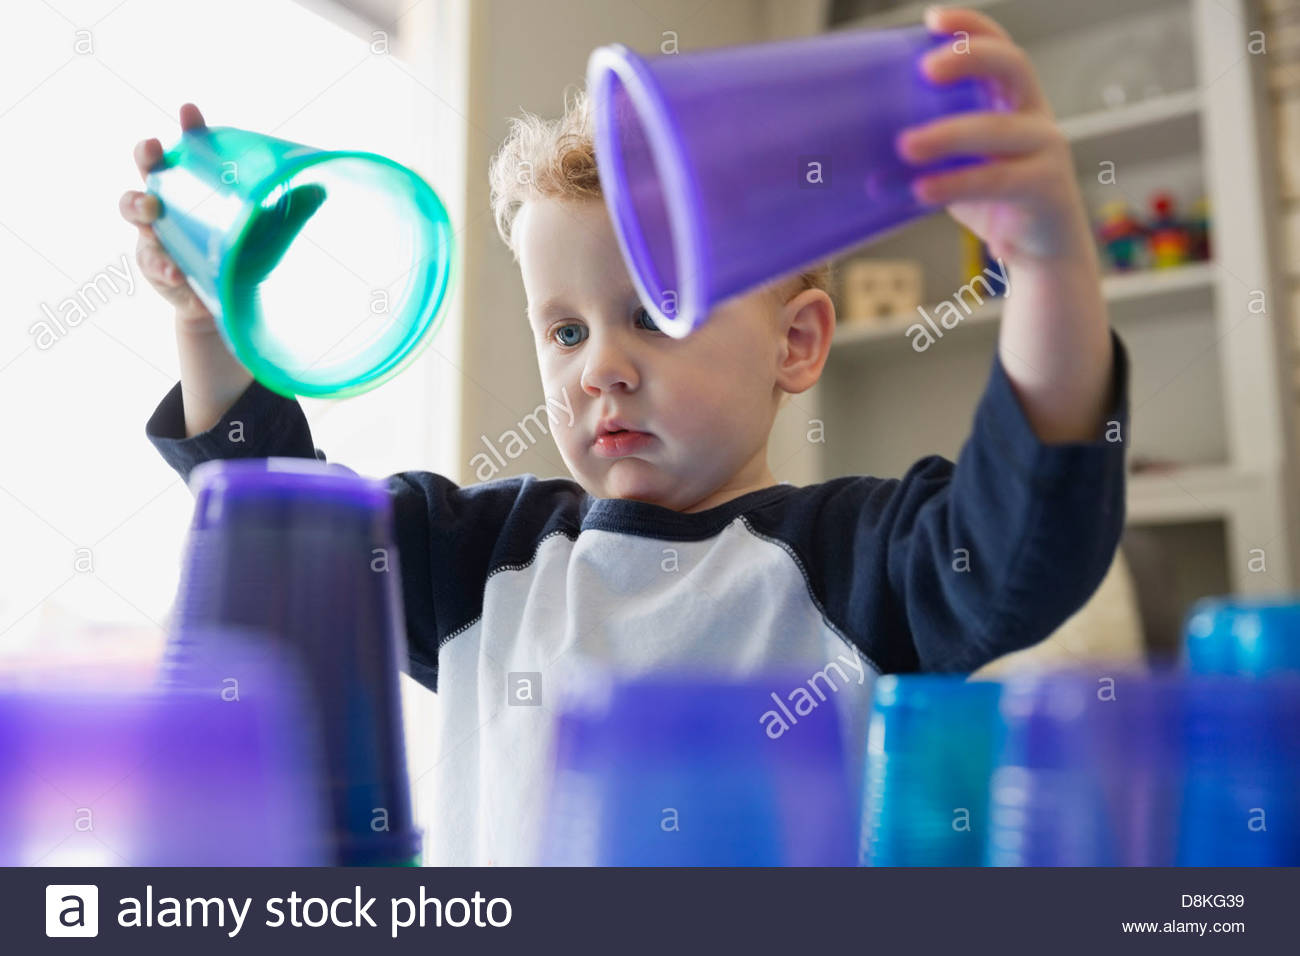 Young boy stacking plastic cups at home - Stock Image